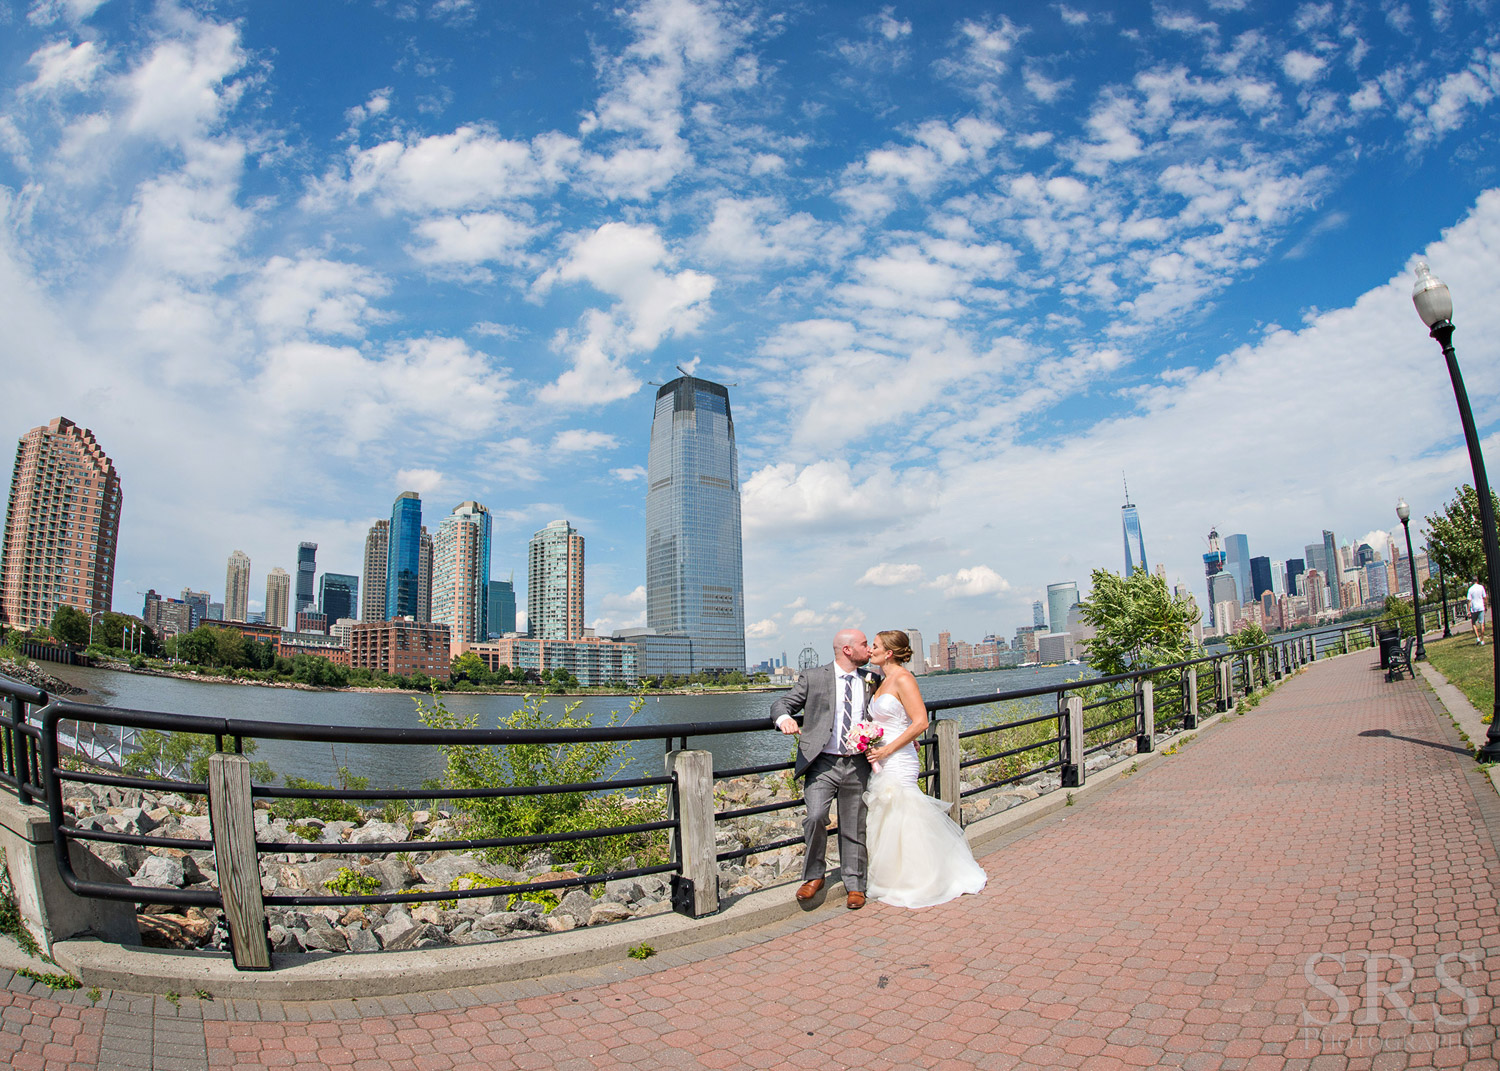 18_SRS_Photography_Sara_Stadtmiller_Asbury_Park_Wedding_Photography_NJ_Wedding_Photographer_Monmouth_County_Wedding_Photographer_Wedding_NYCSkyline_LibertyHouseWedding_WeddingPortrait